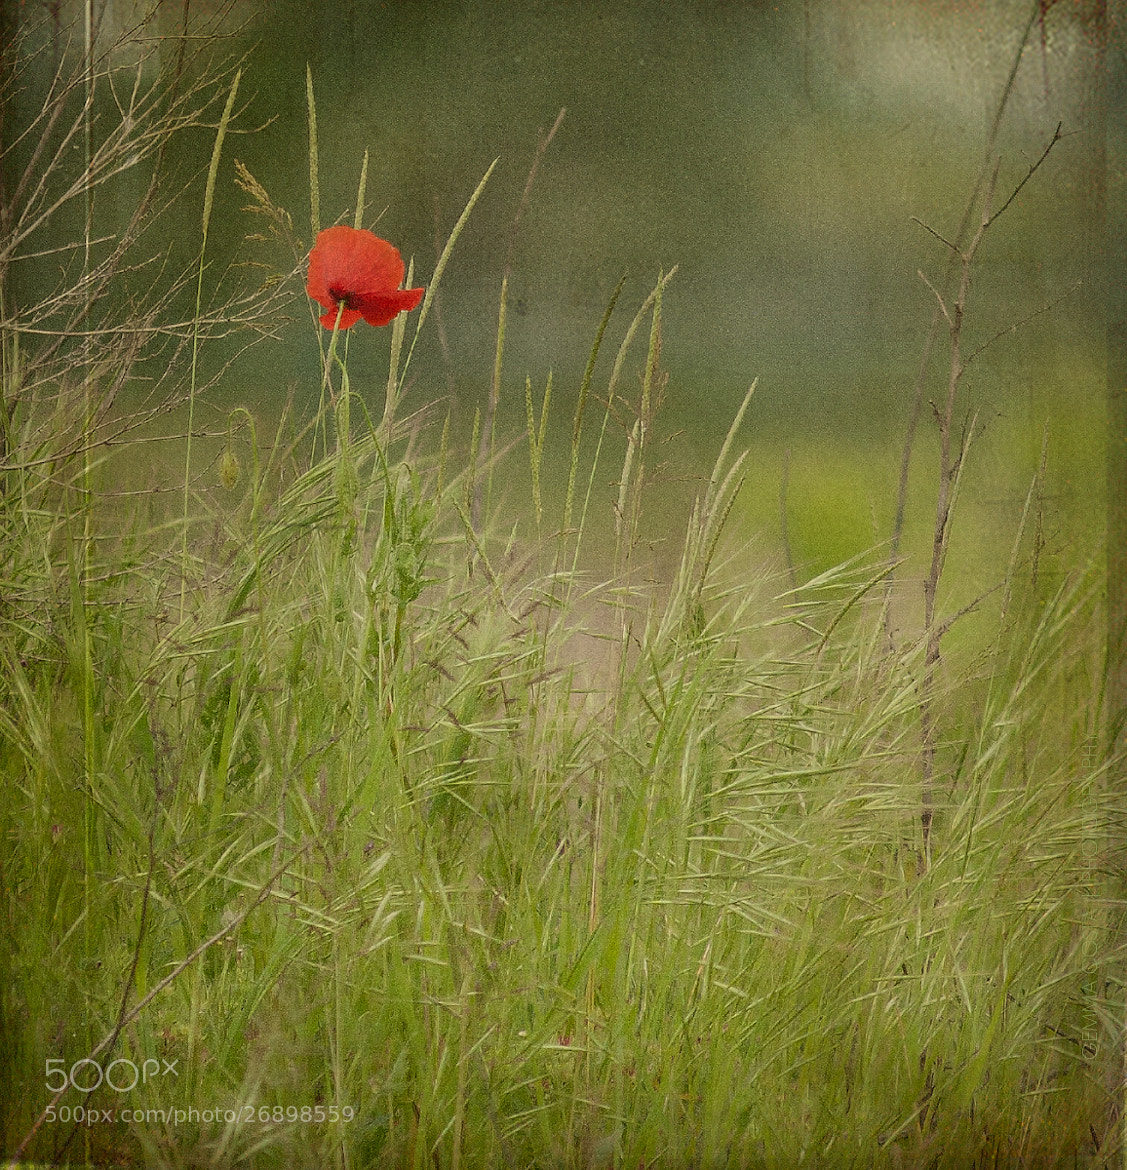 Photograph without you by Gemma Costa on 500px